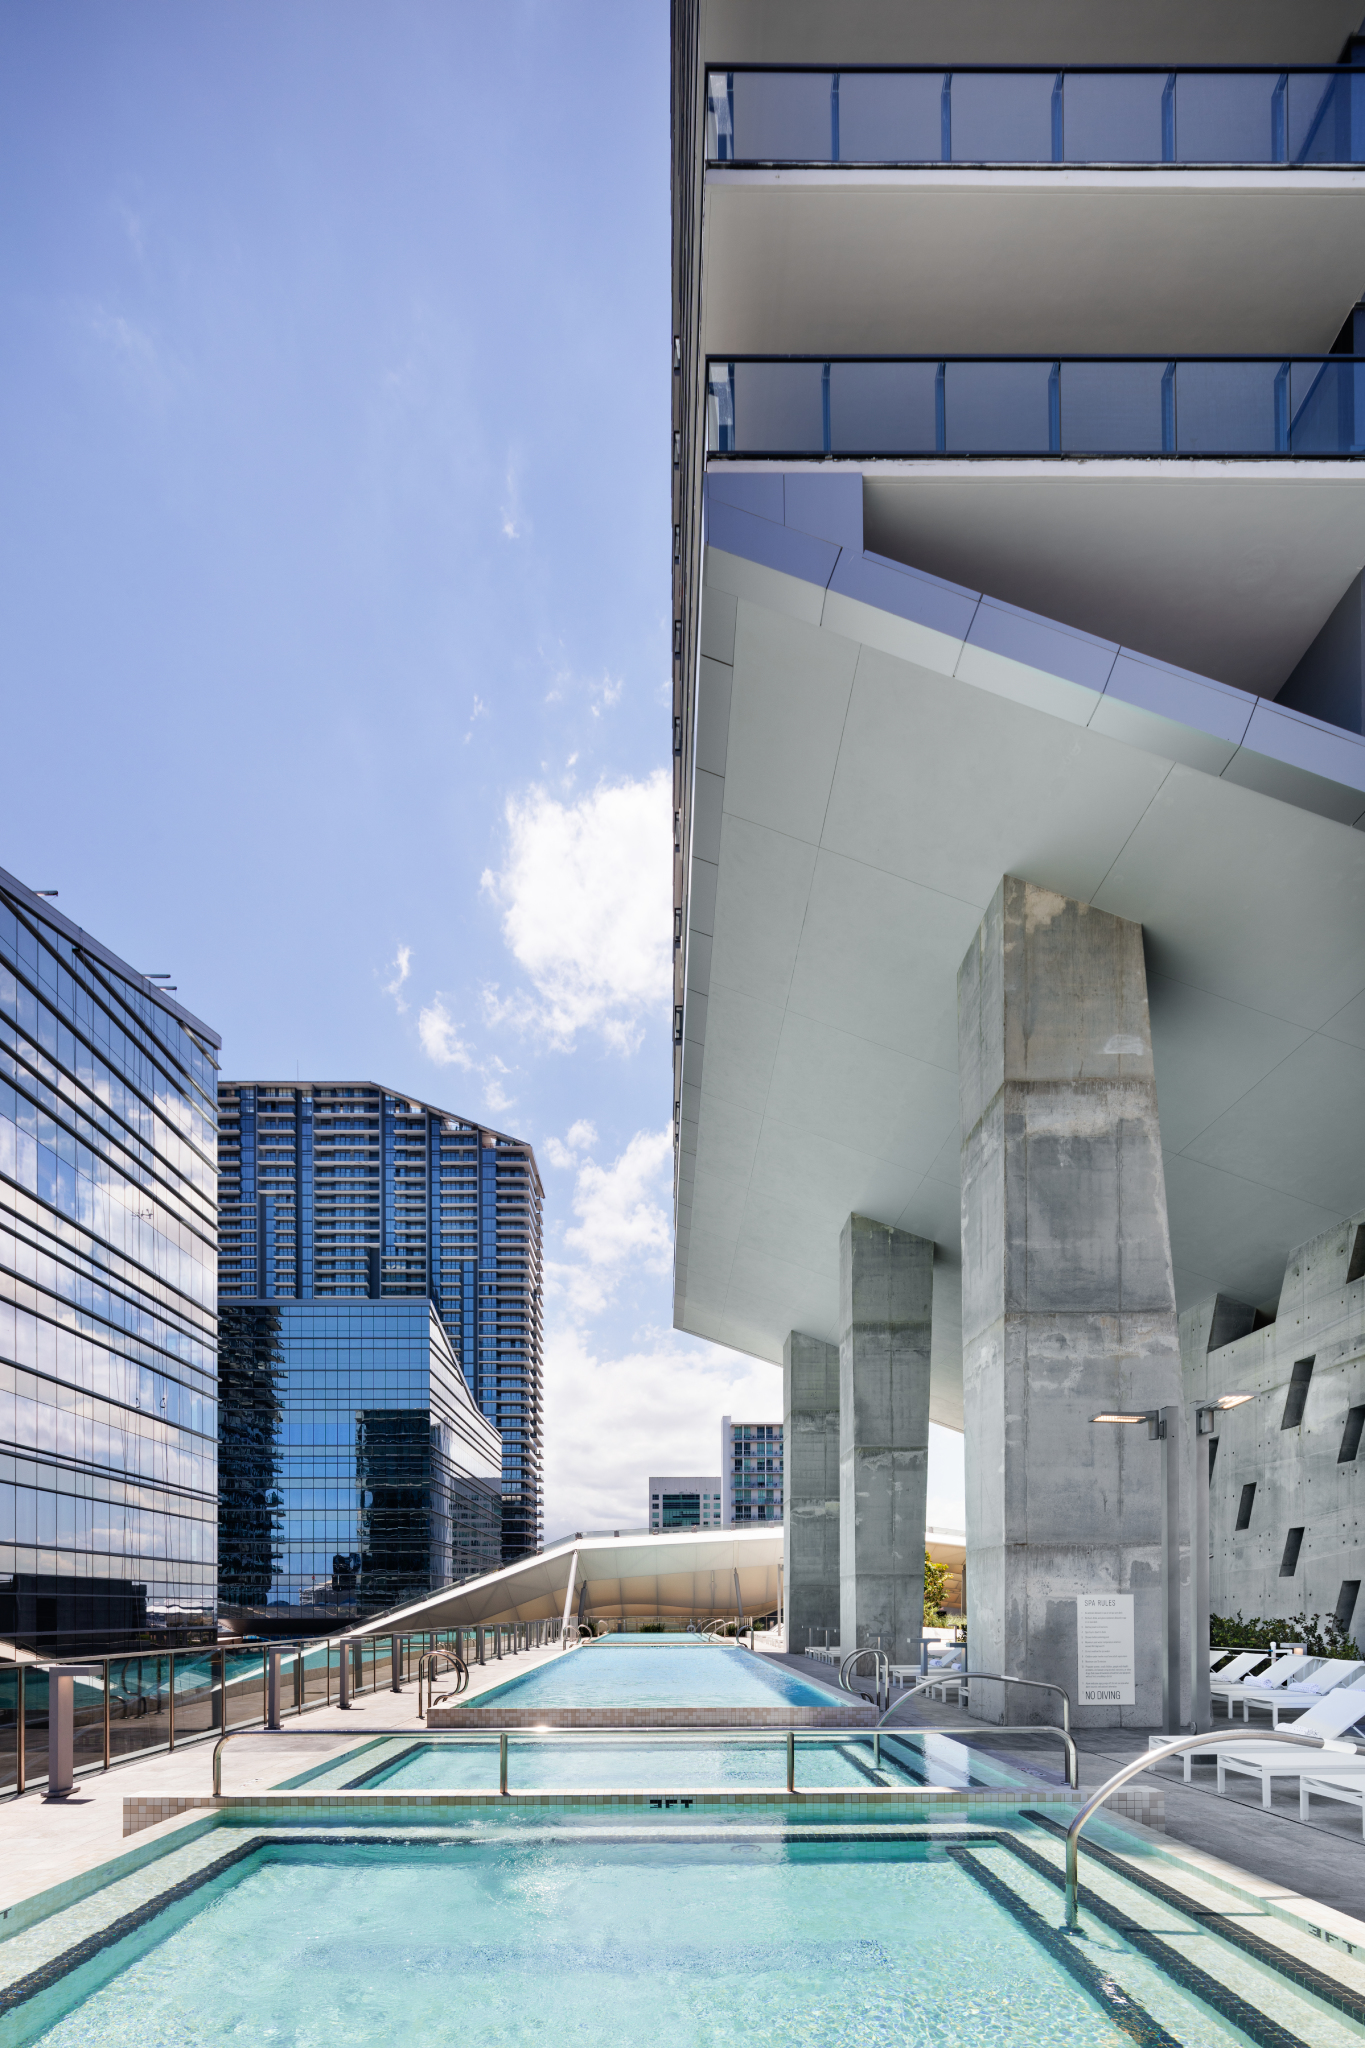 featured image of Brickell City Centre